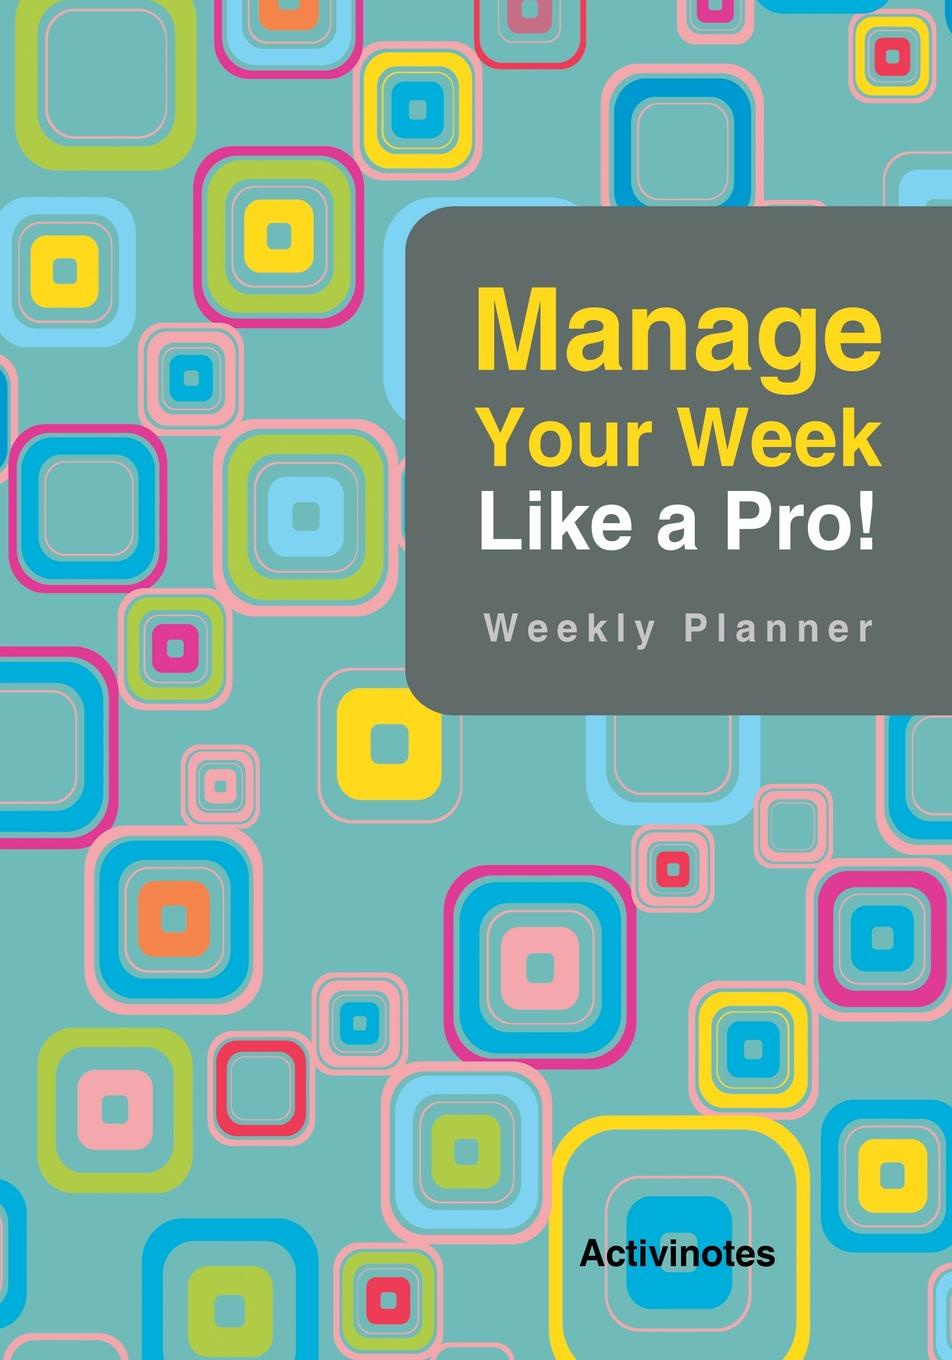 Activinotes Manage Your Week Like a Pro. Weekly Planner week planner wall decal